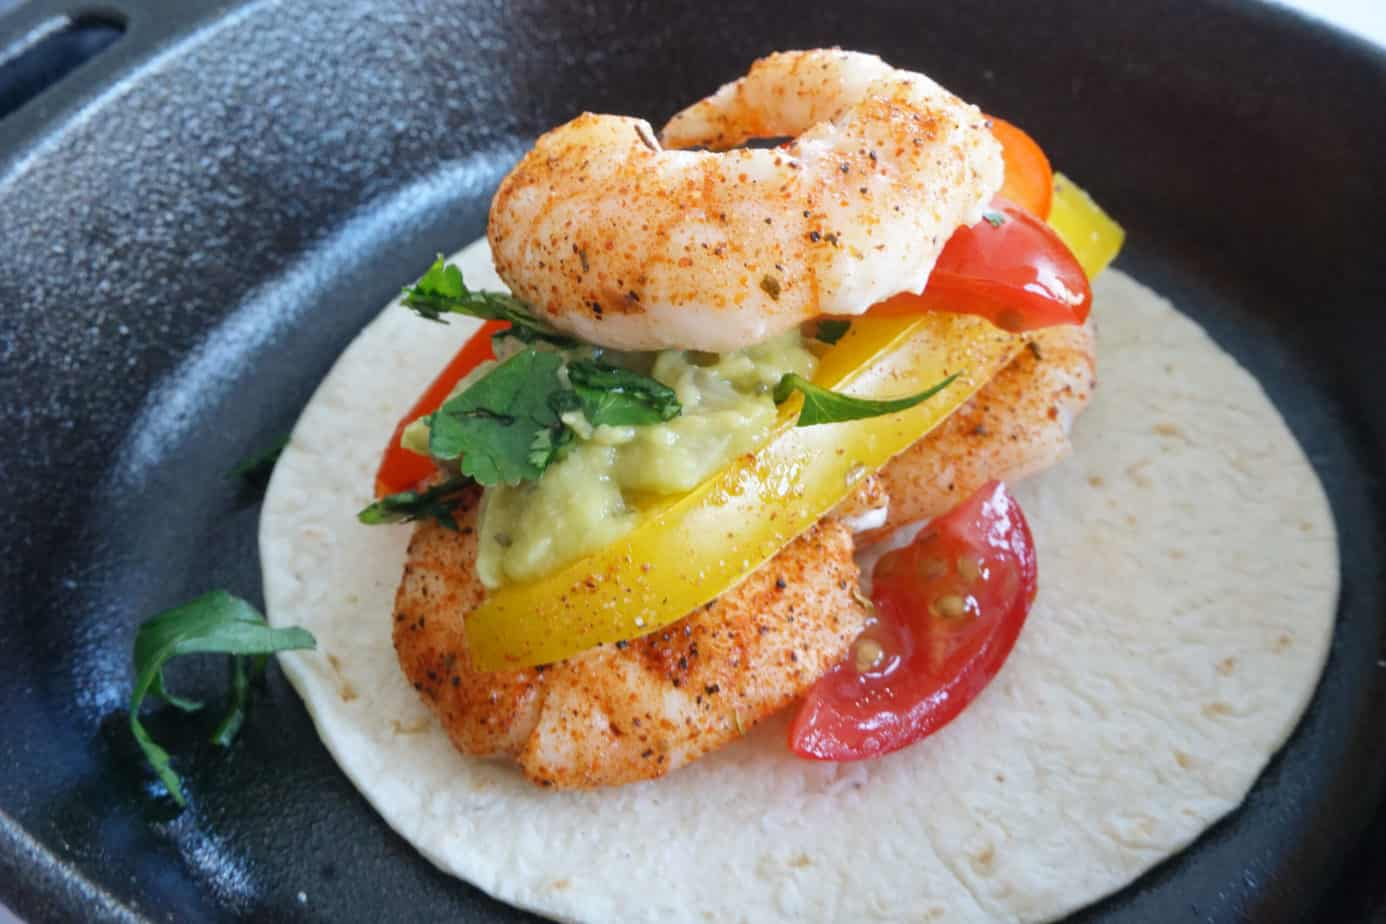 shrimp fajitas with seasoning, guacamole and cilantro on a low carb taco shell